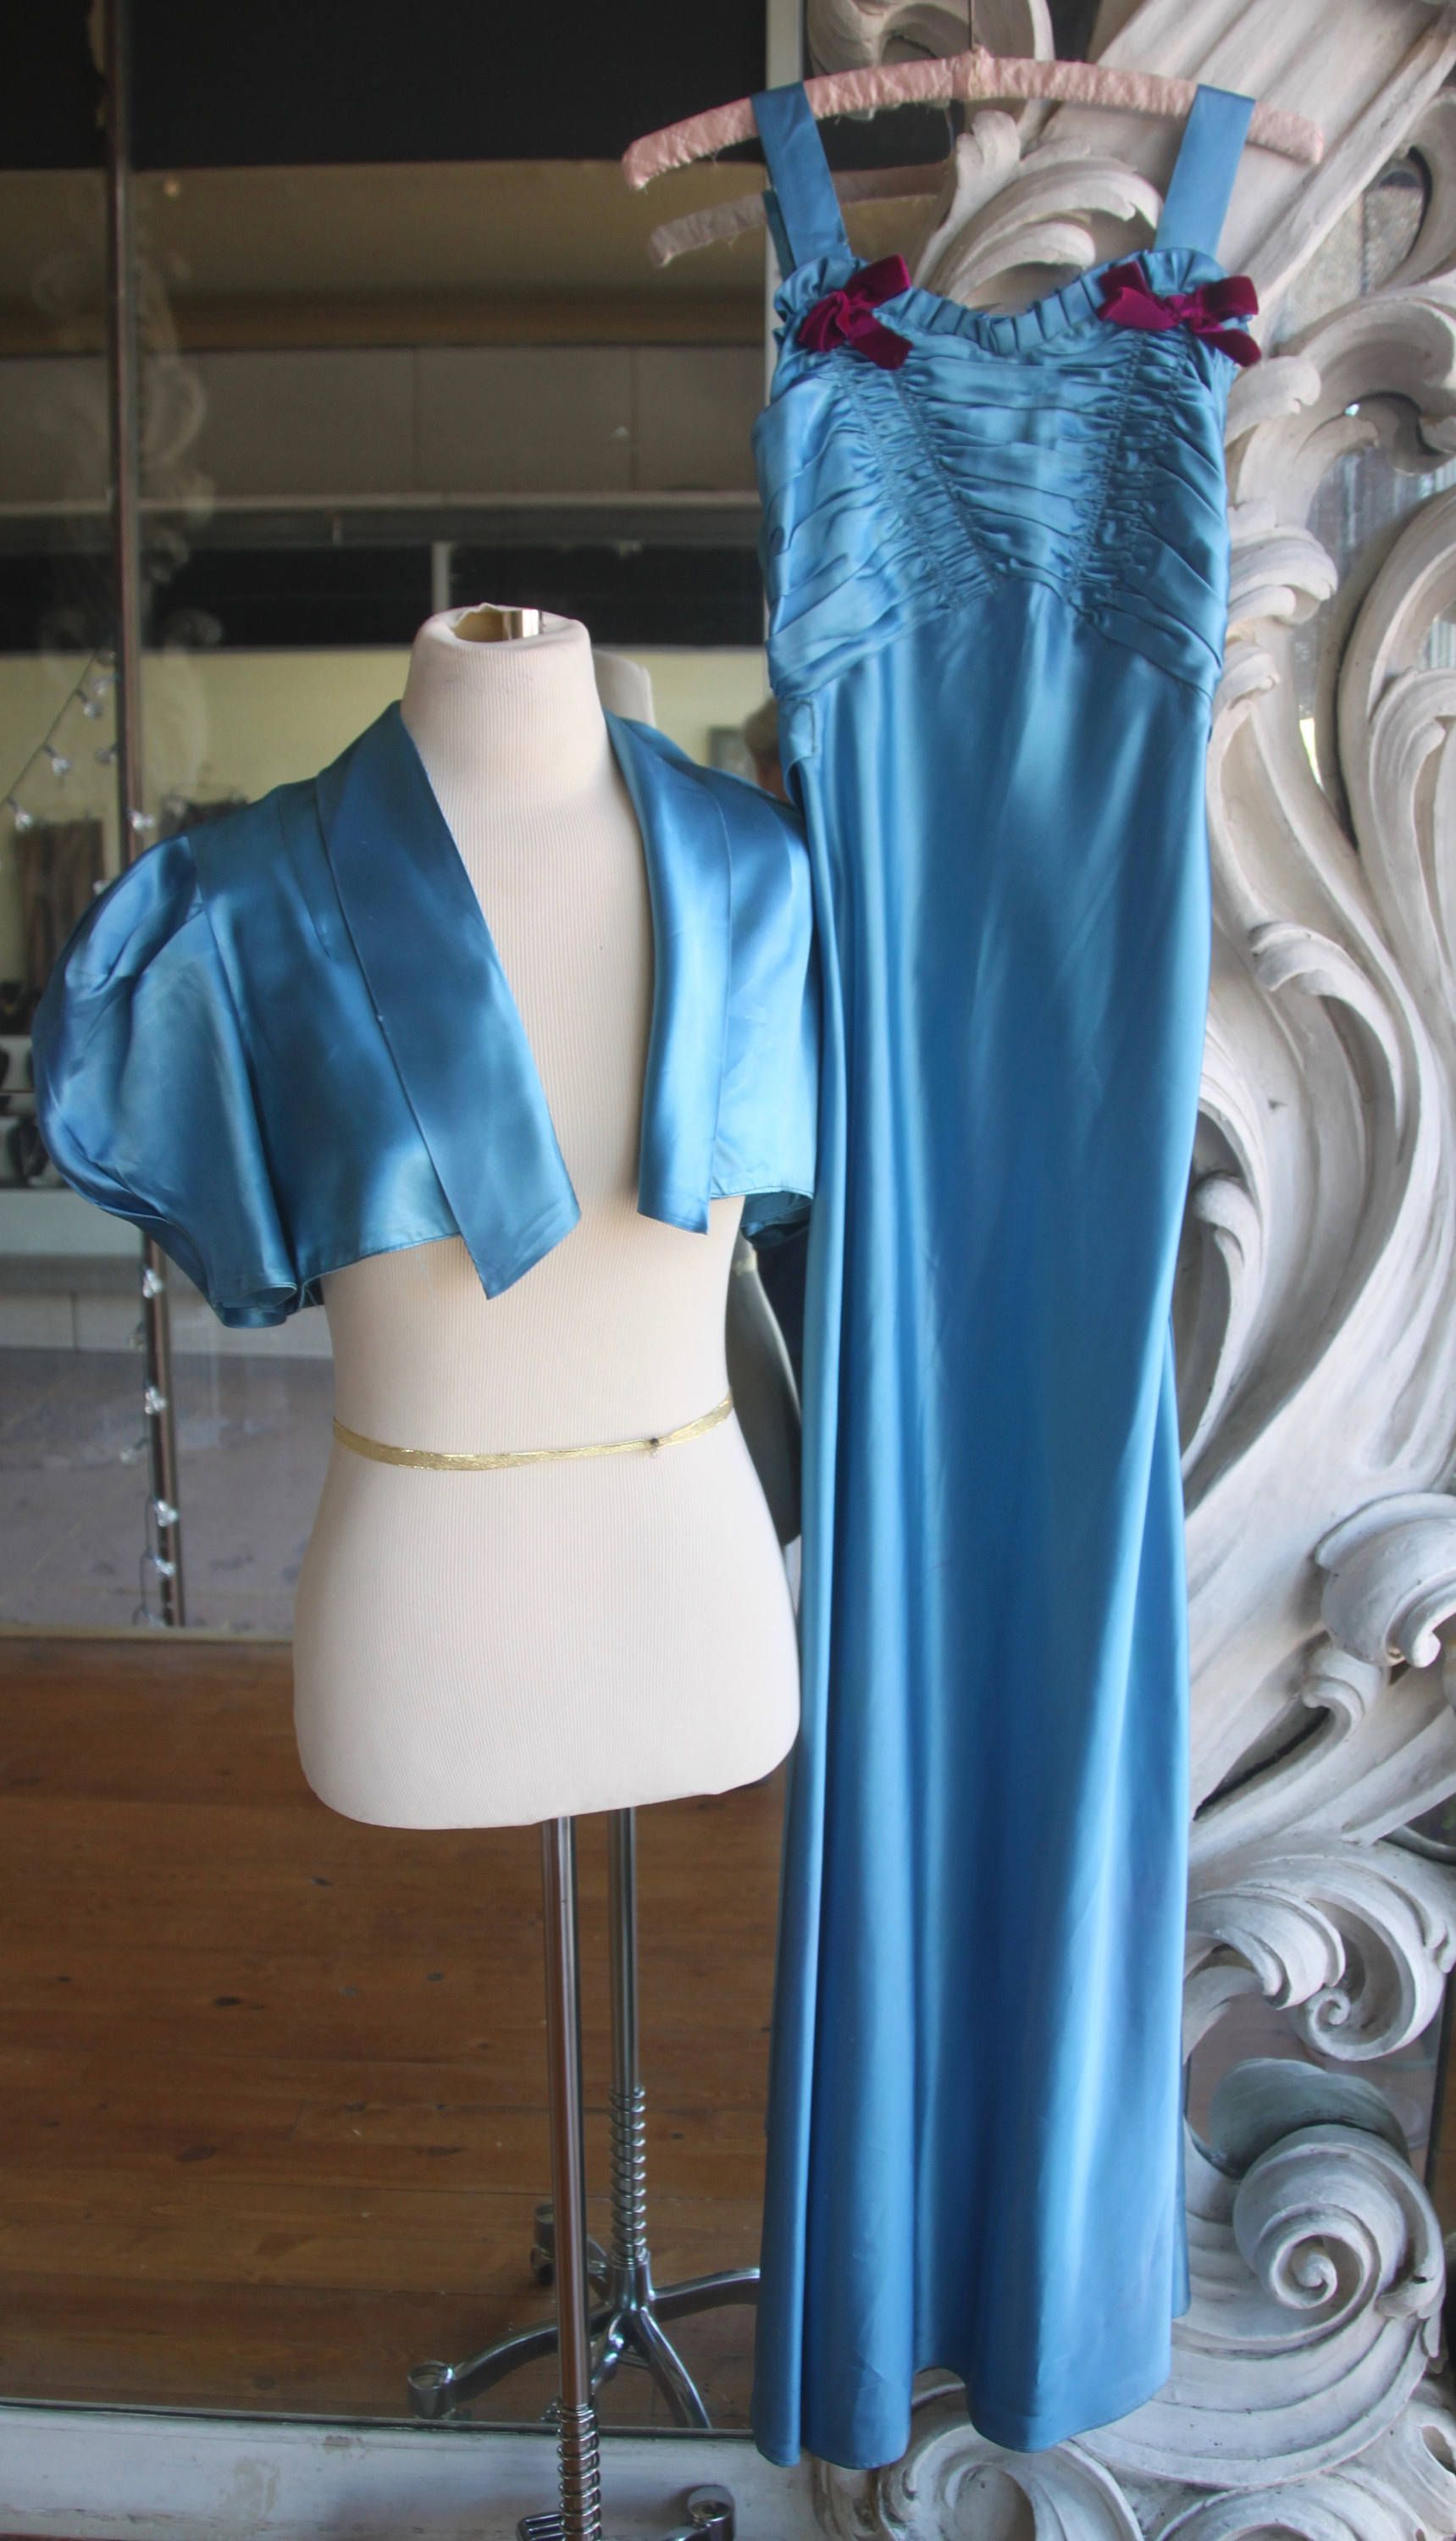 Vintage 1930s 1940s Blue Satin Prom Dress 32 Bust By Sweetlittlevillage On Etsy Satin Prom Dress Blue Satin Trending Outfits [ 3000 x 1719 Pixel ]